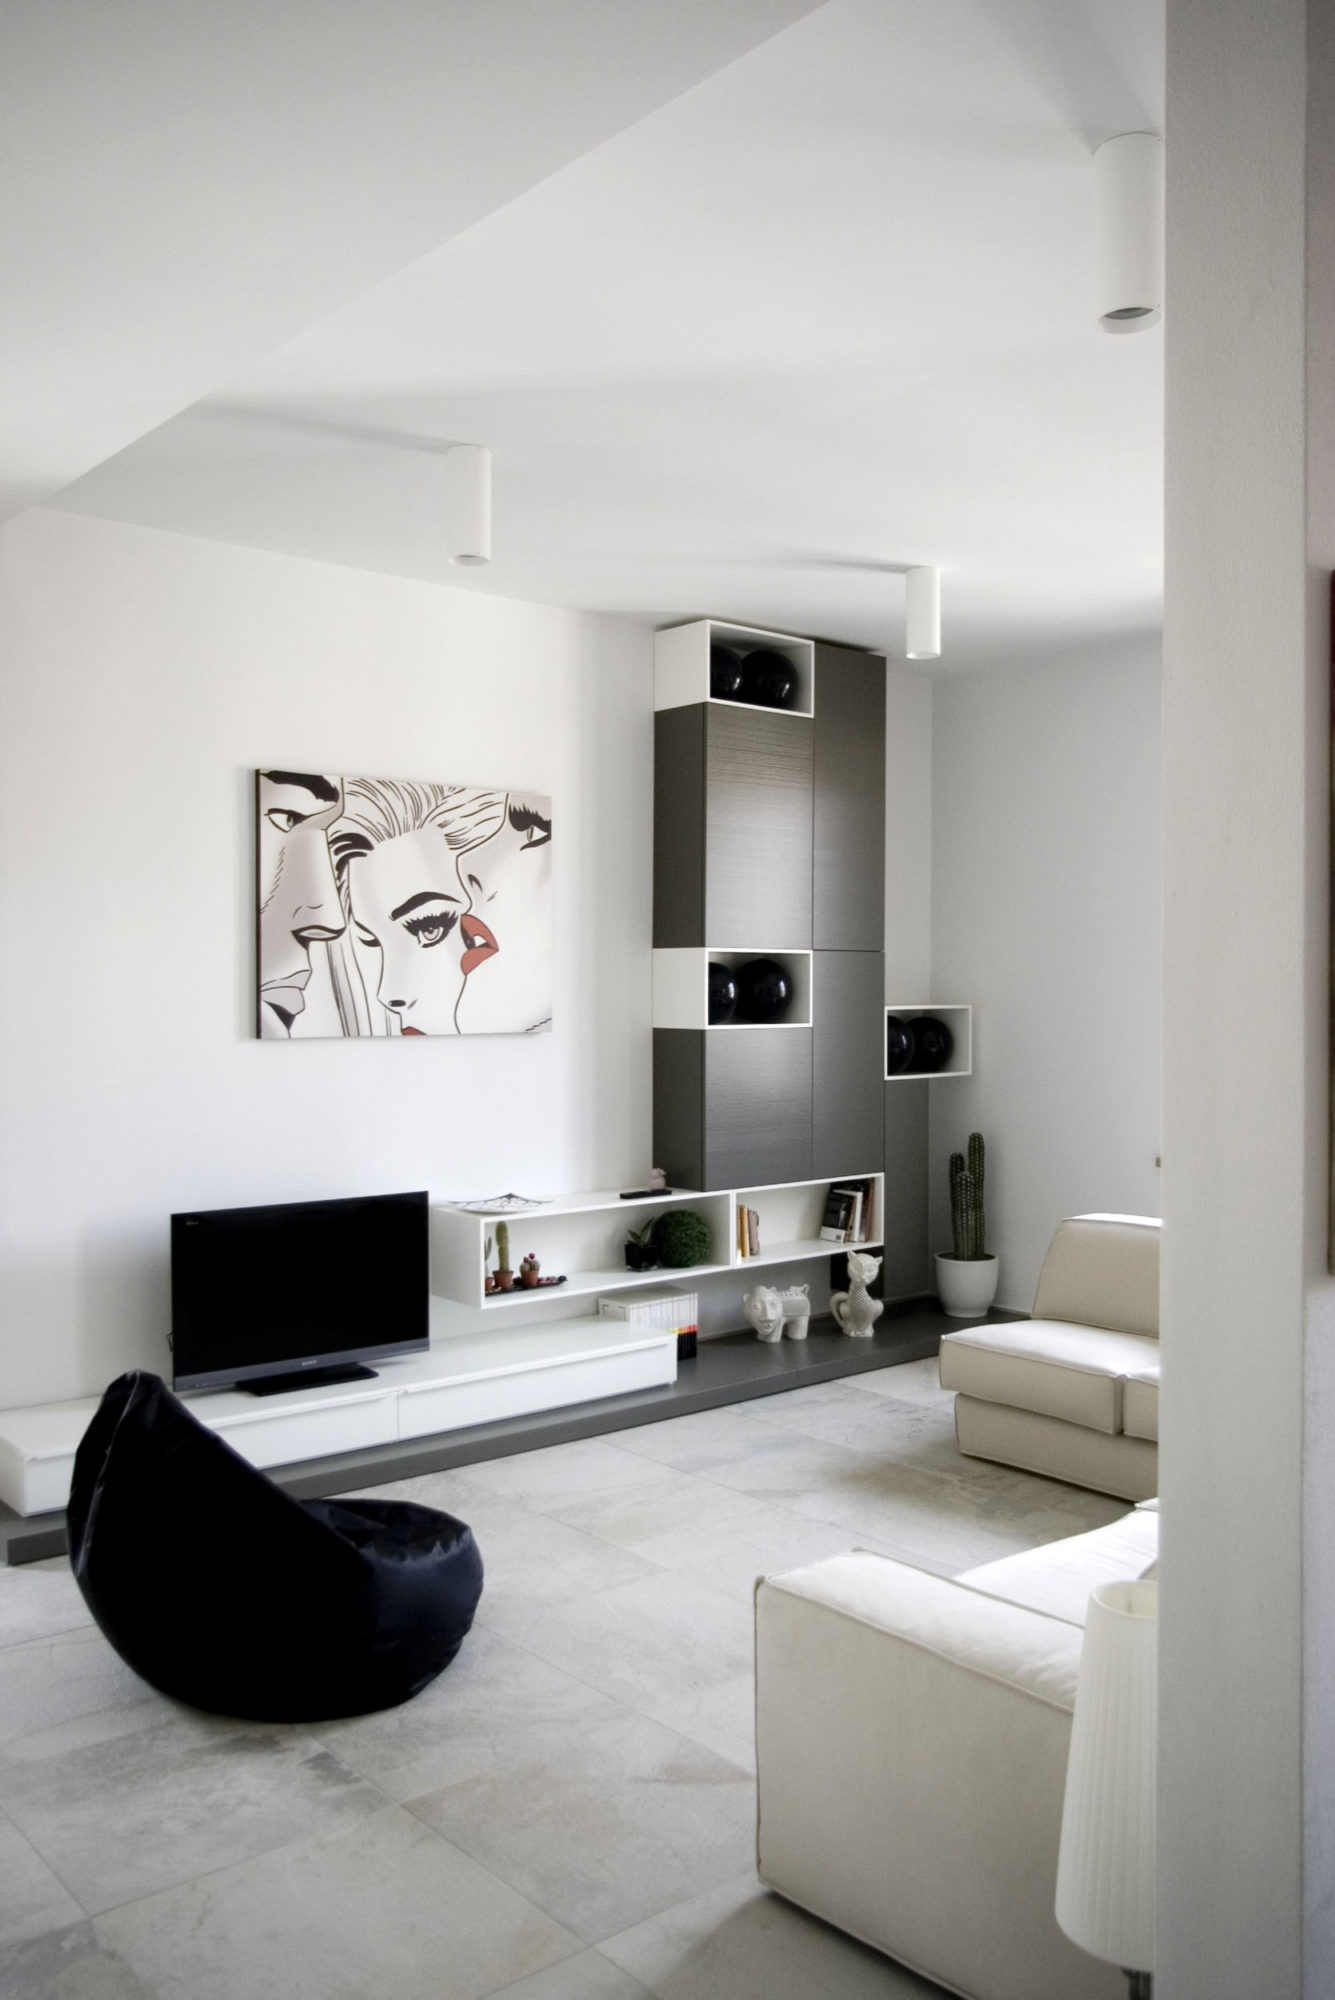 Minimalist interior by msx2 architettura for Minimalist house interior design